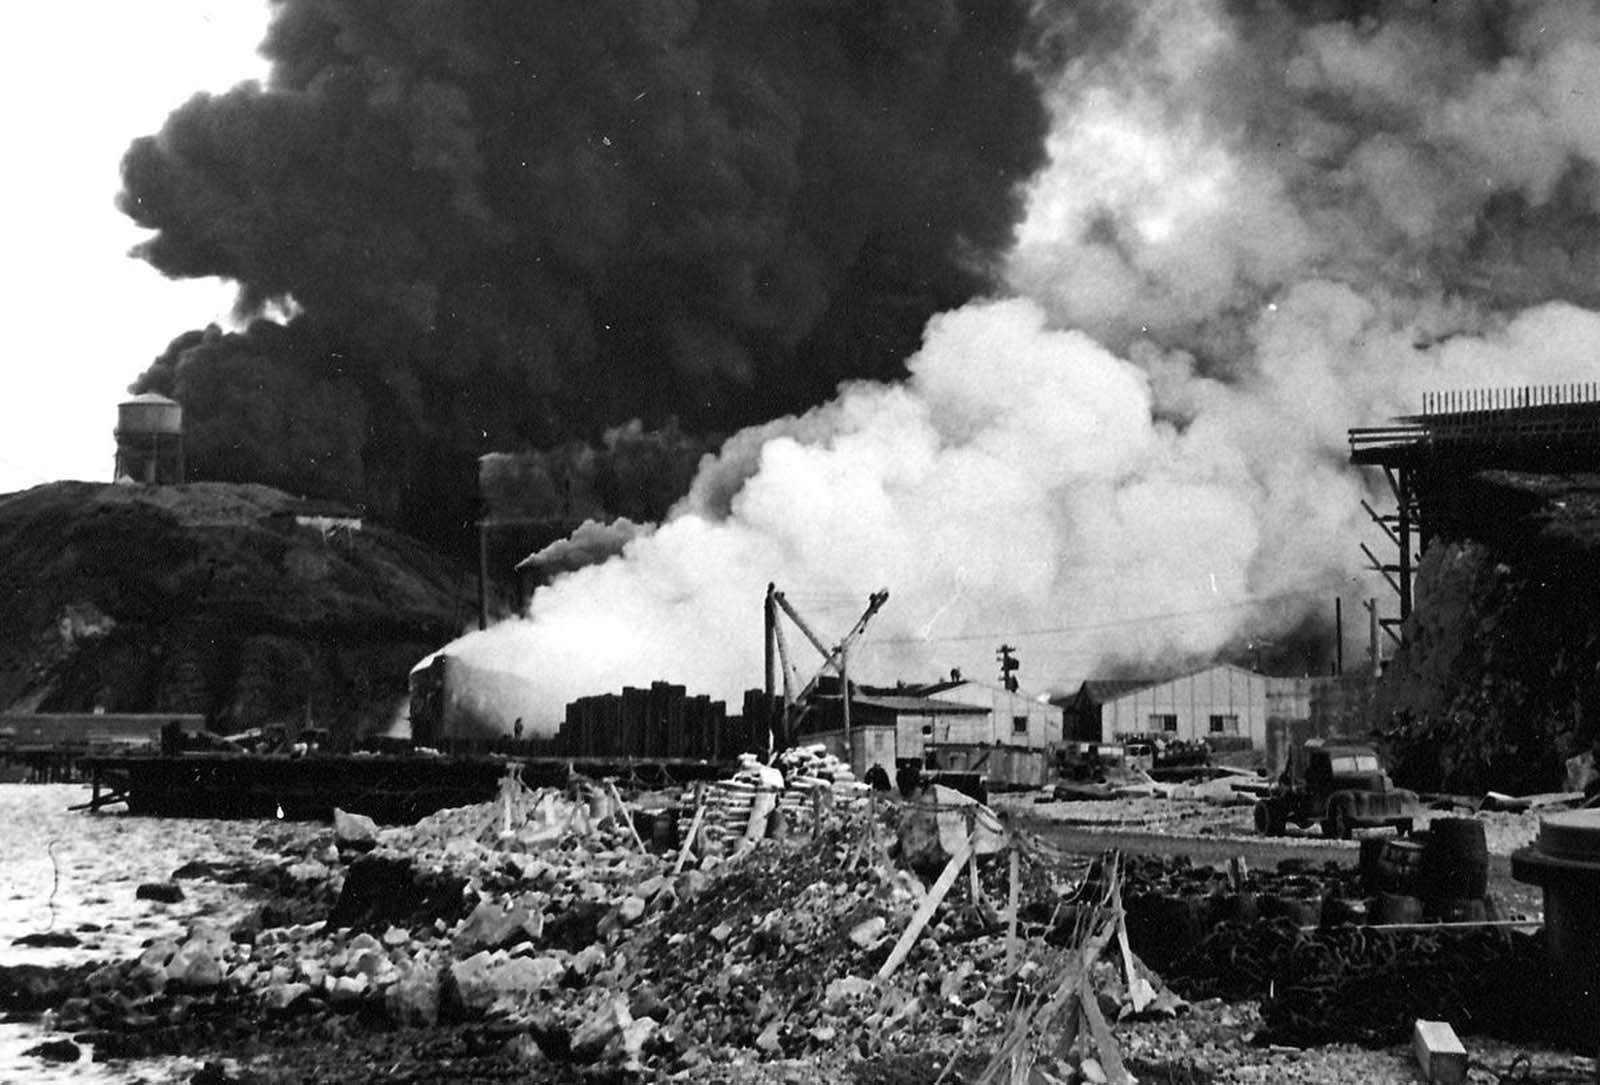 Bombing of SS Northwestern and oil tanks in Dutch Harbor, Alaska, by Japanese carrier-based aircraft on June 4, 1942.